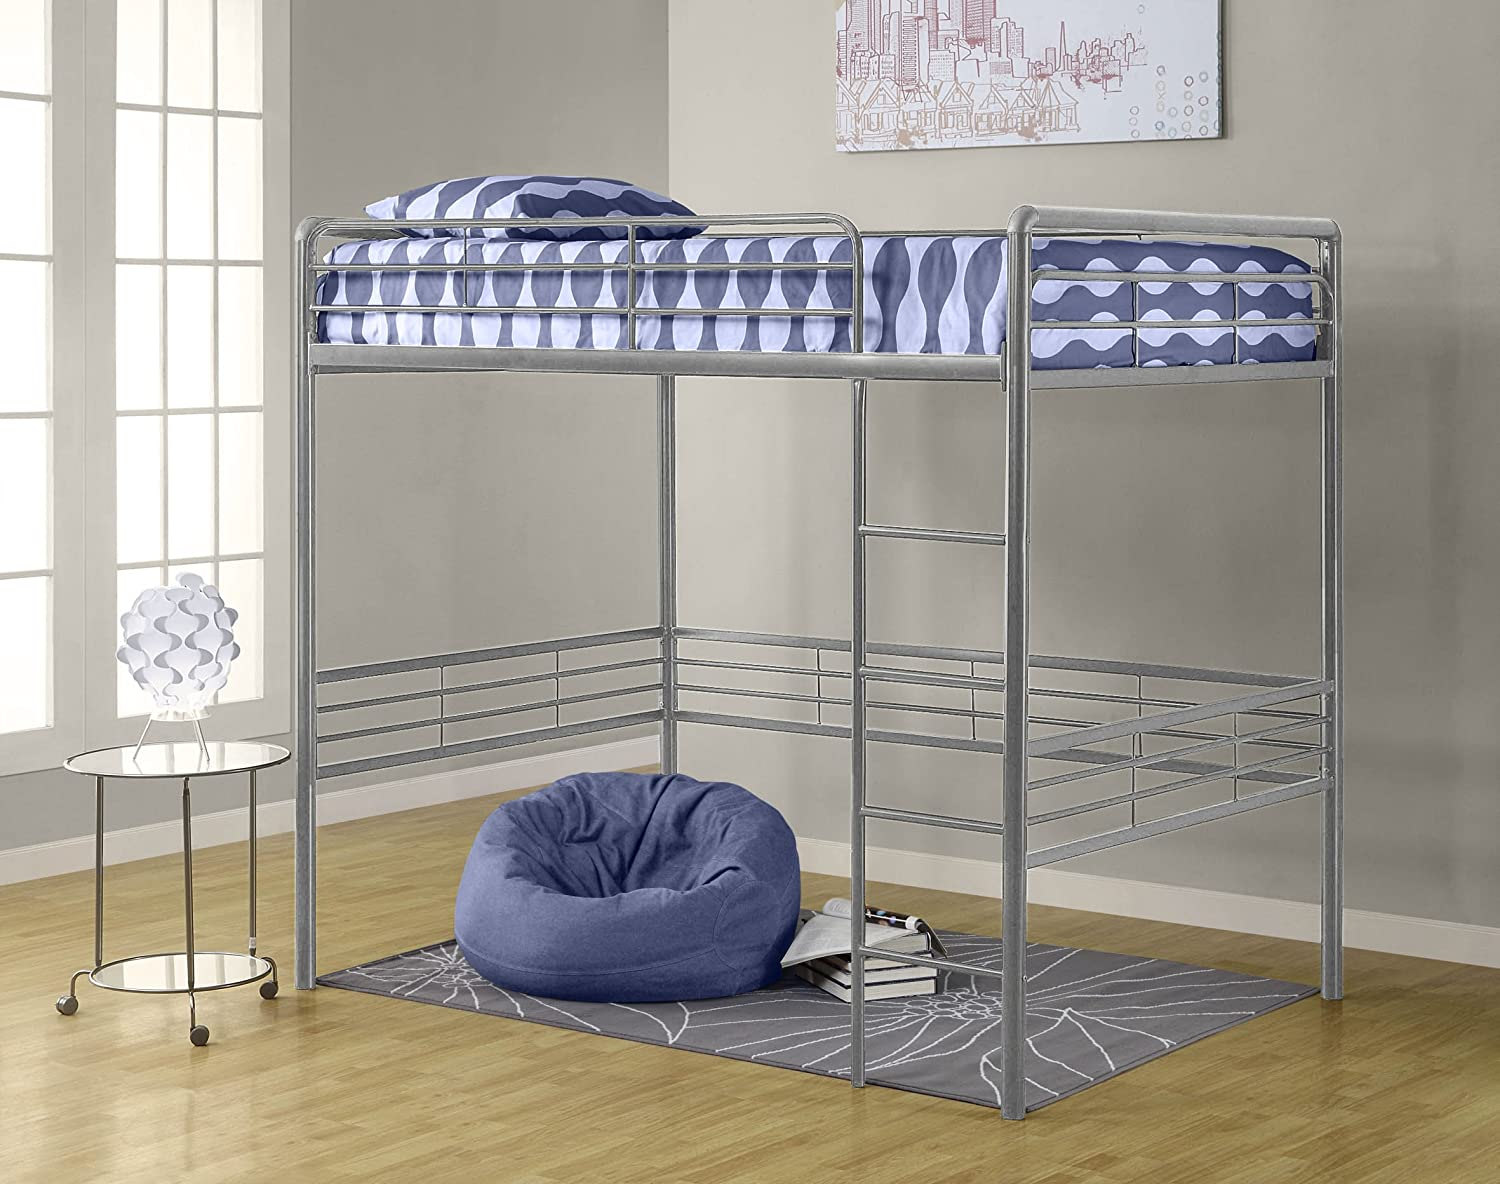 Amazon.com: Dorel Home Products Full Loft Bed, Silver: Kitchen U0026 Dining